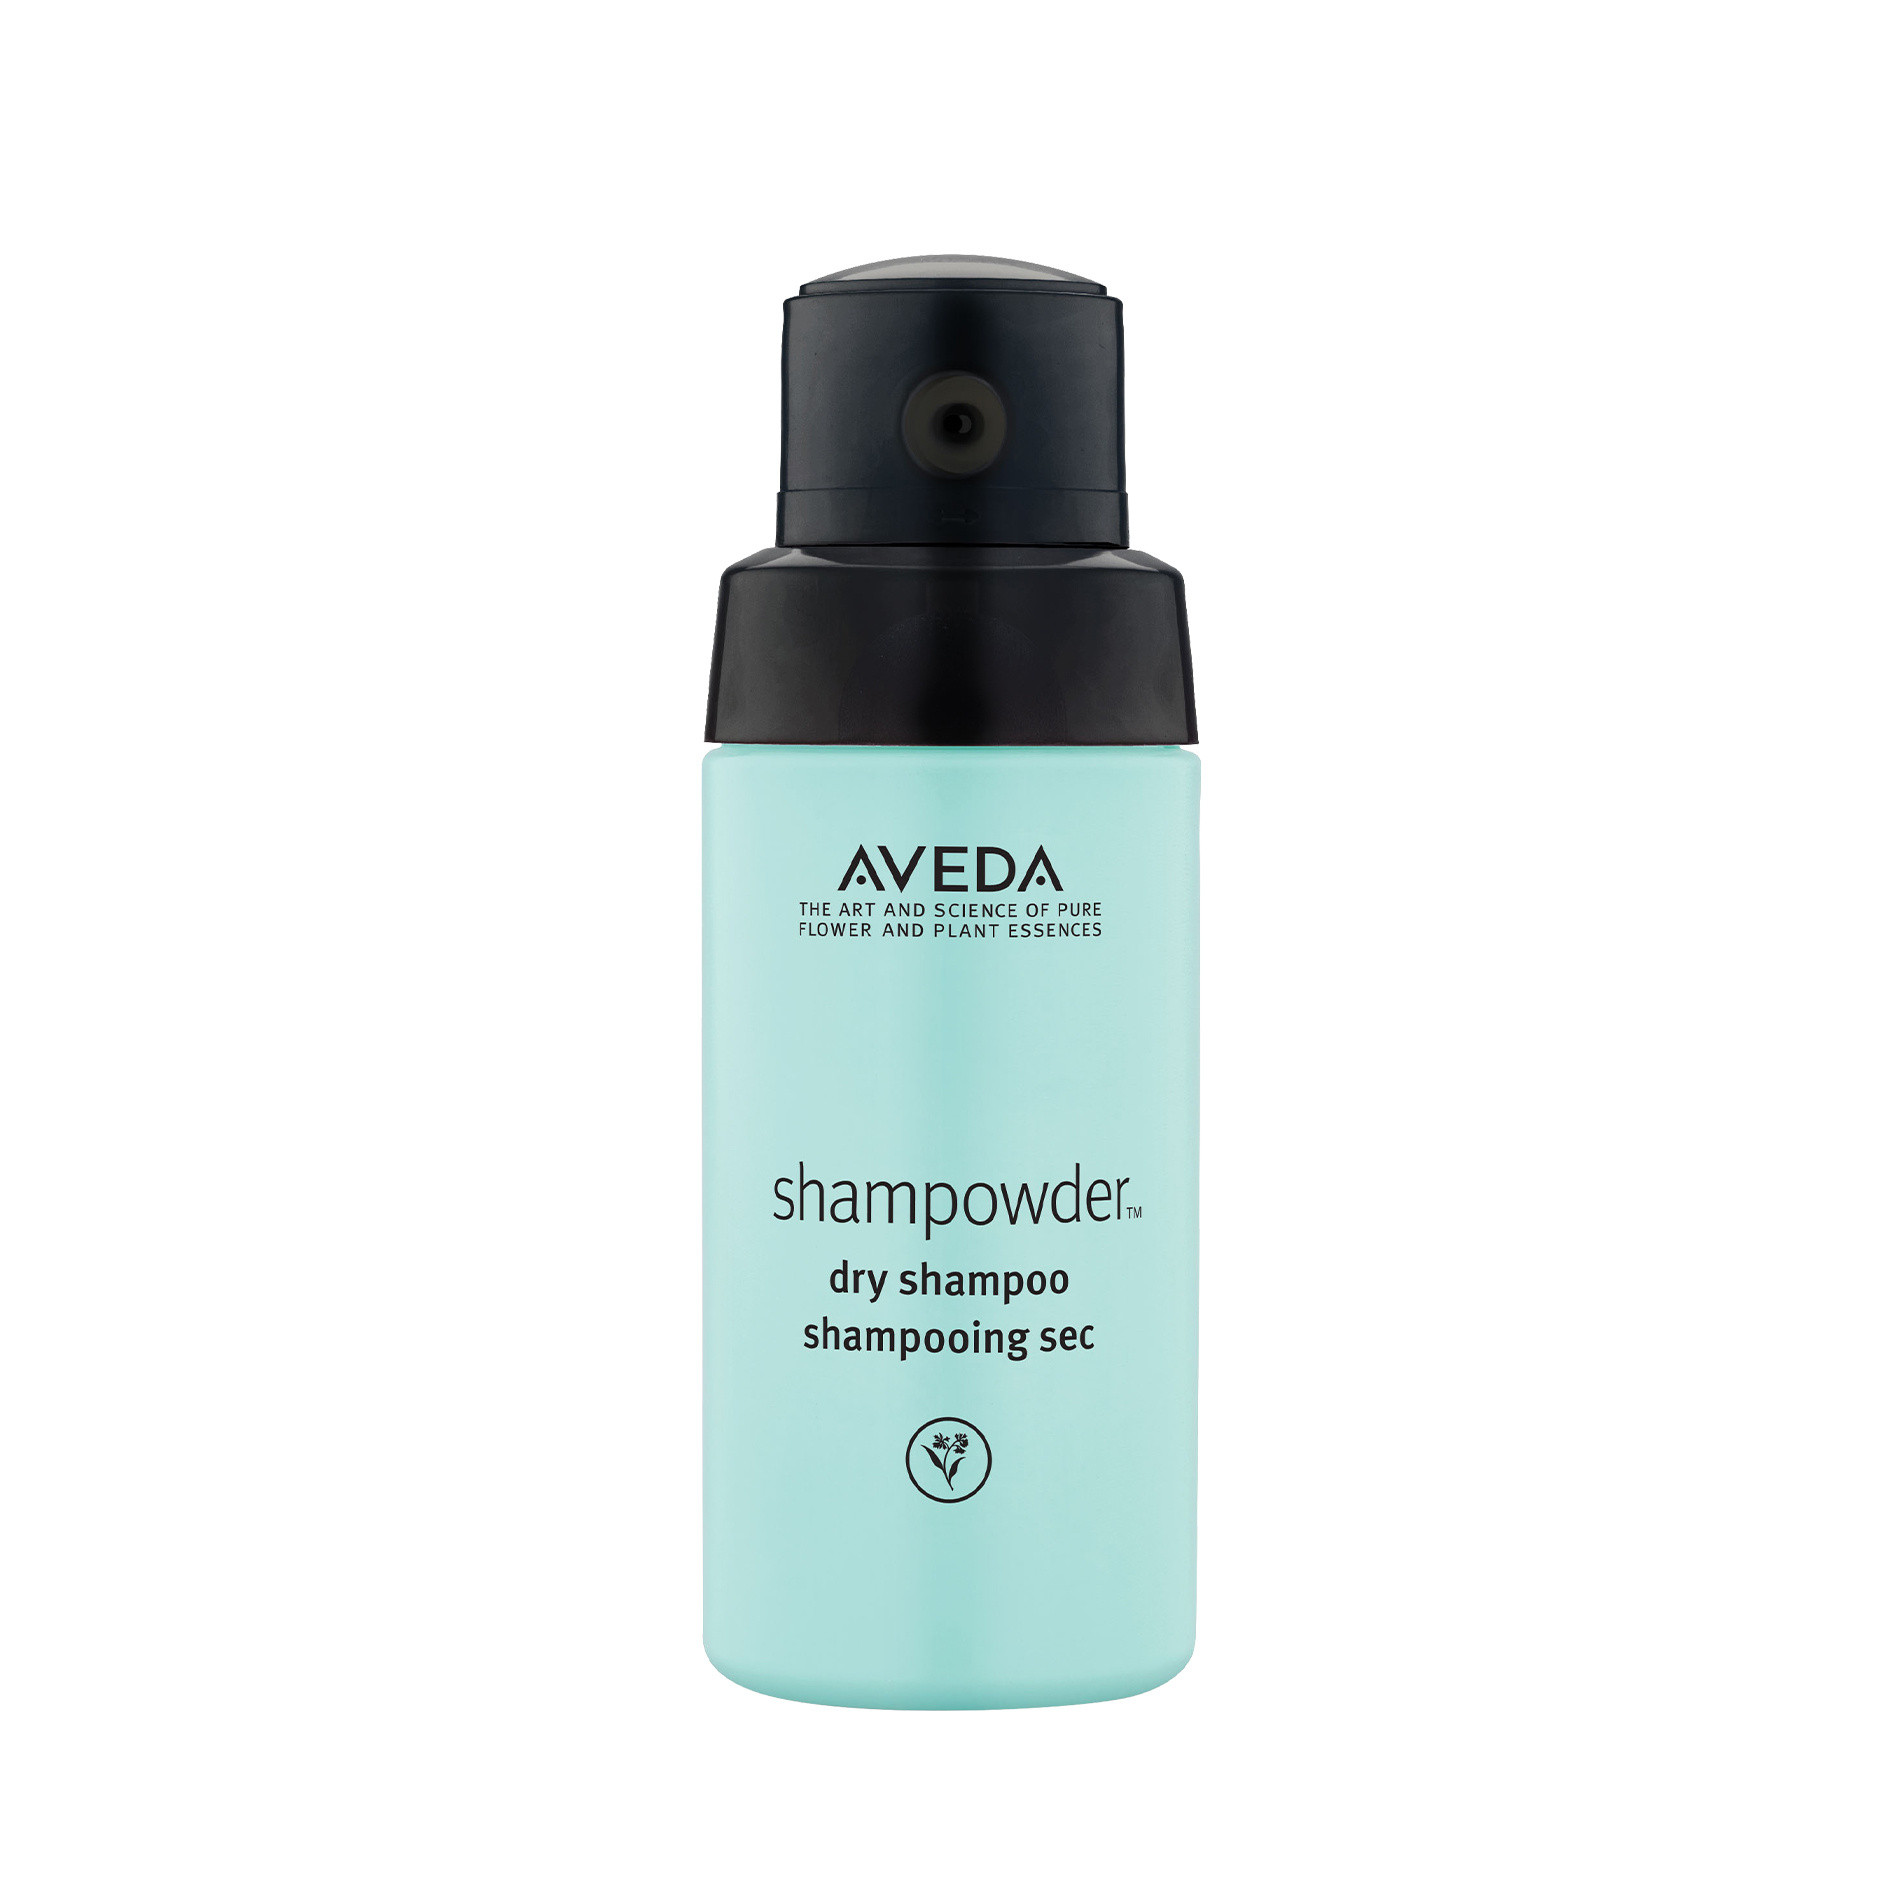 Aveda shampoo secco in polvere 56 g, Azzurro, large image number 0